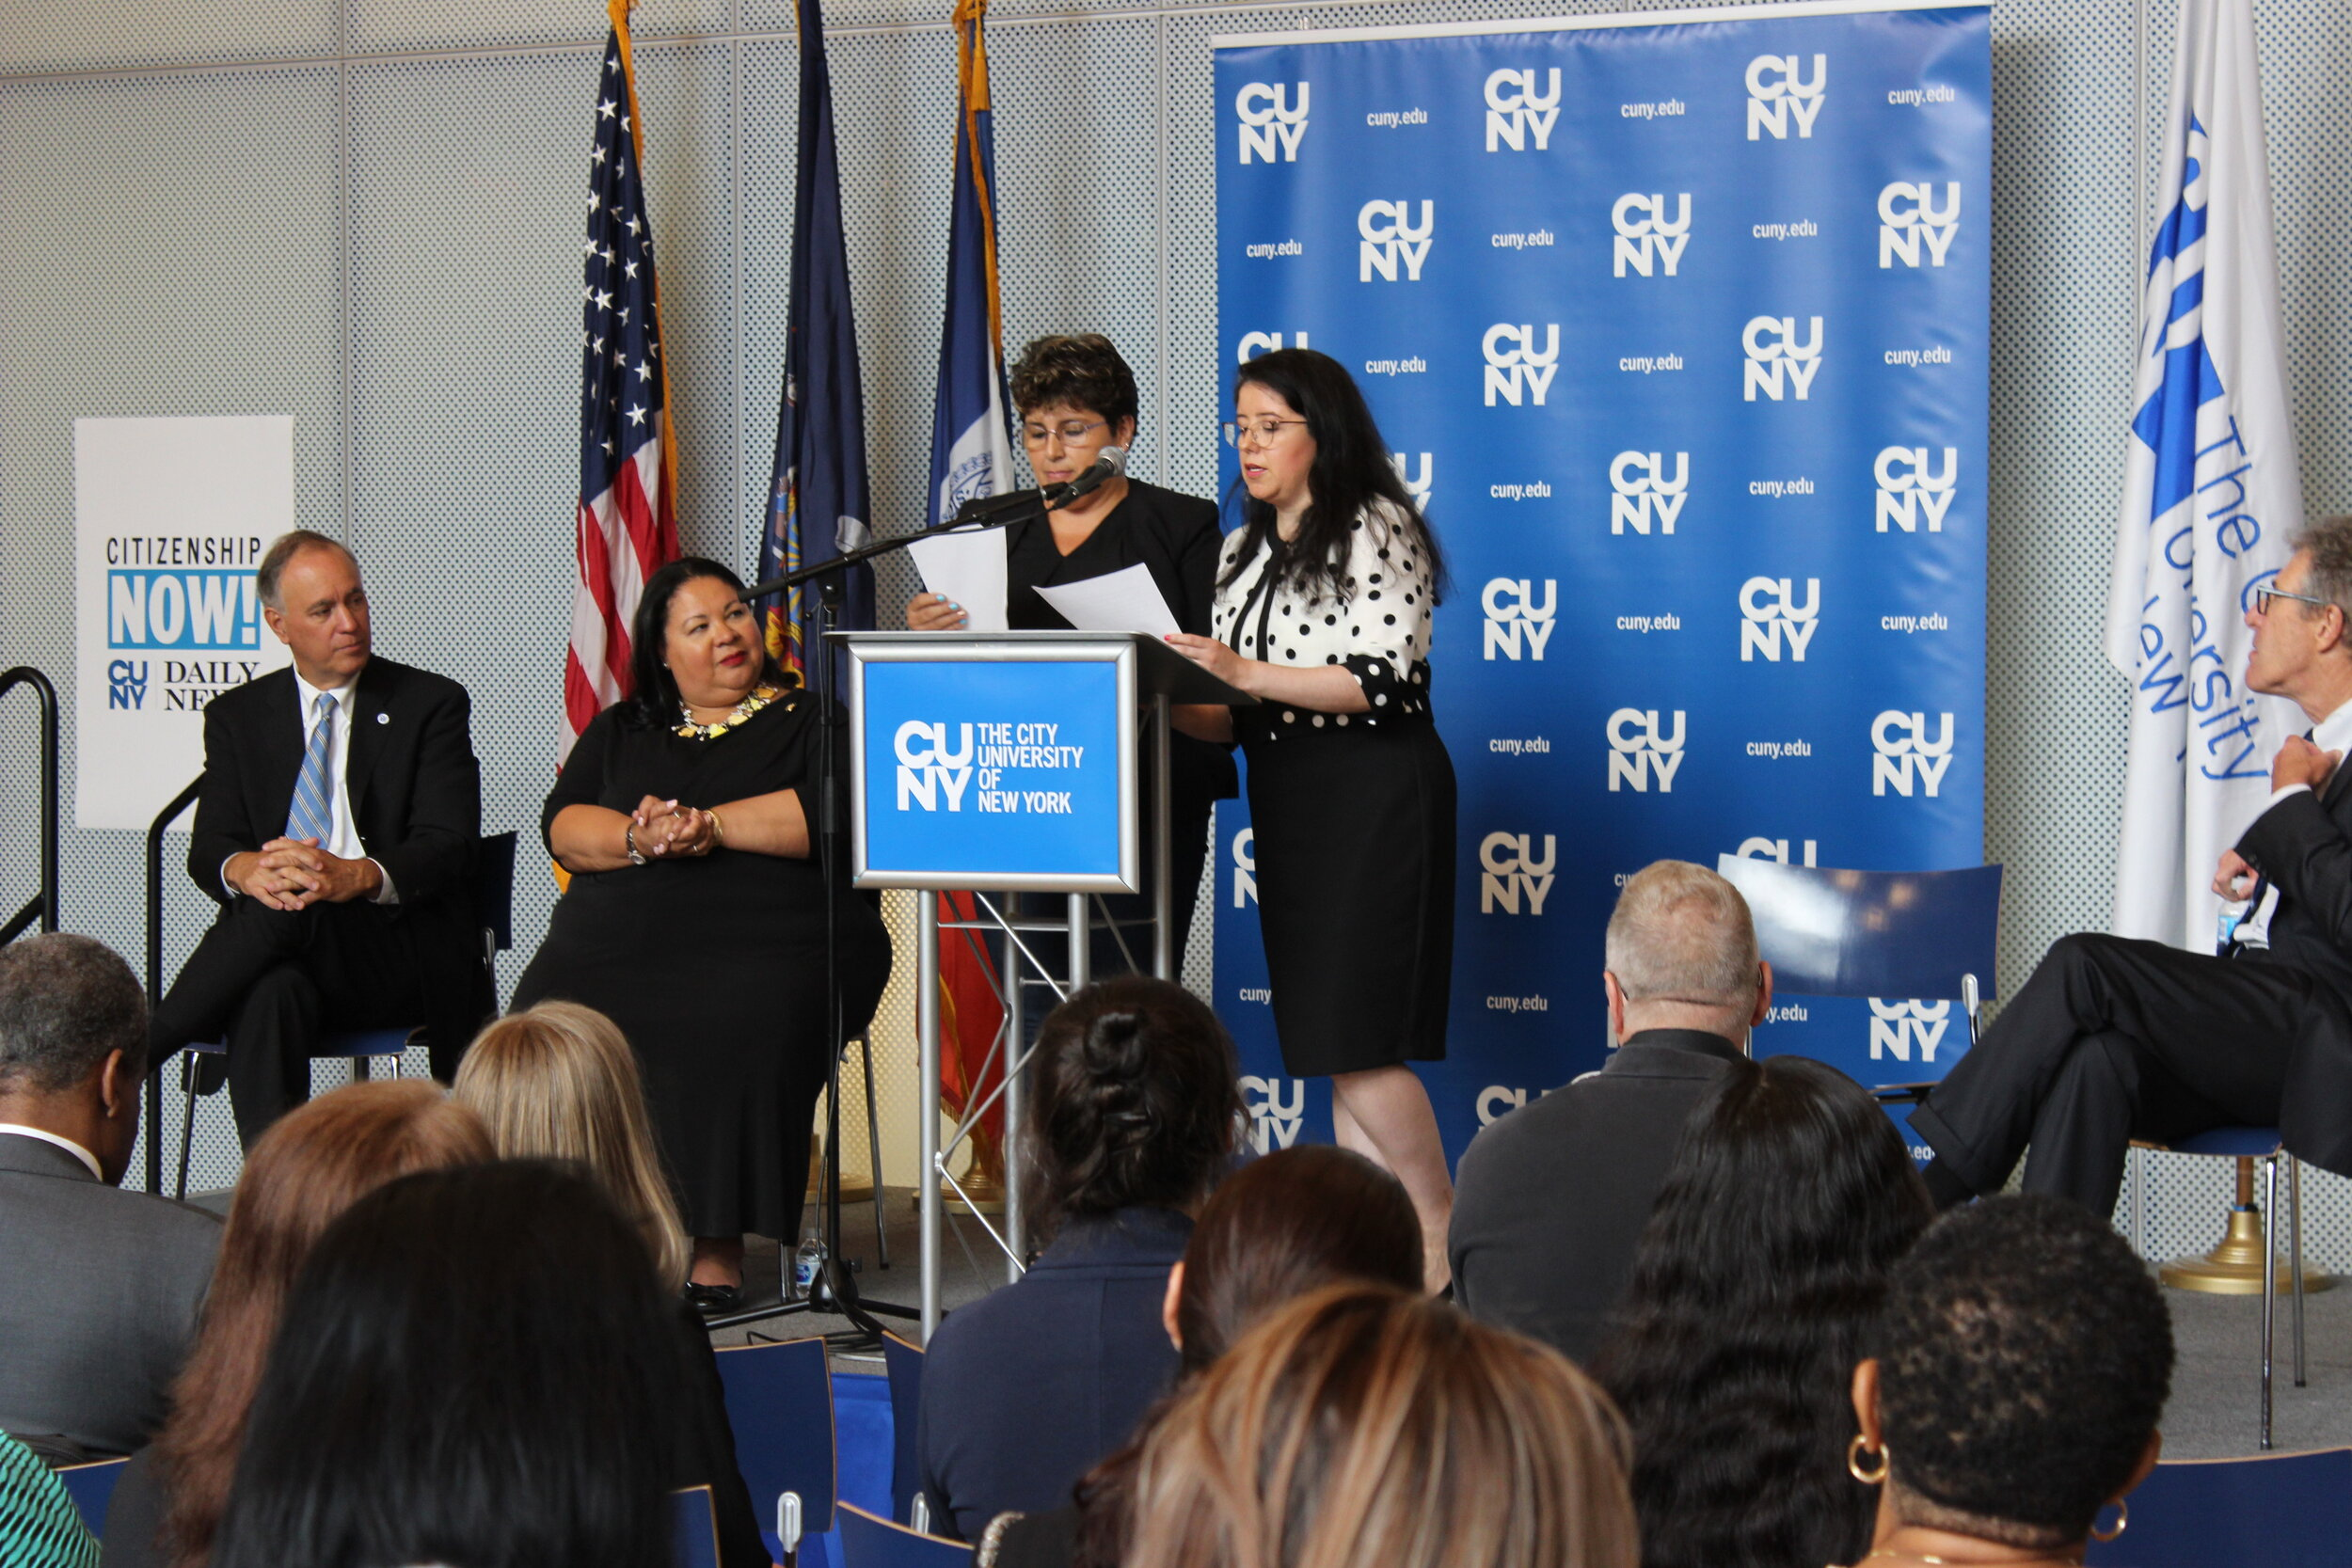 Luzdars Lozar, who became a citizen with help from Citizenship Now!, speaks at a press conference last Friday.